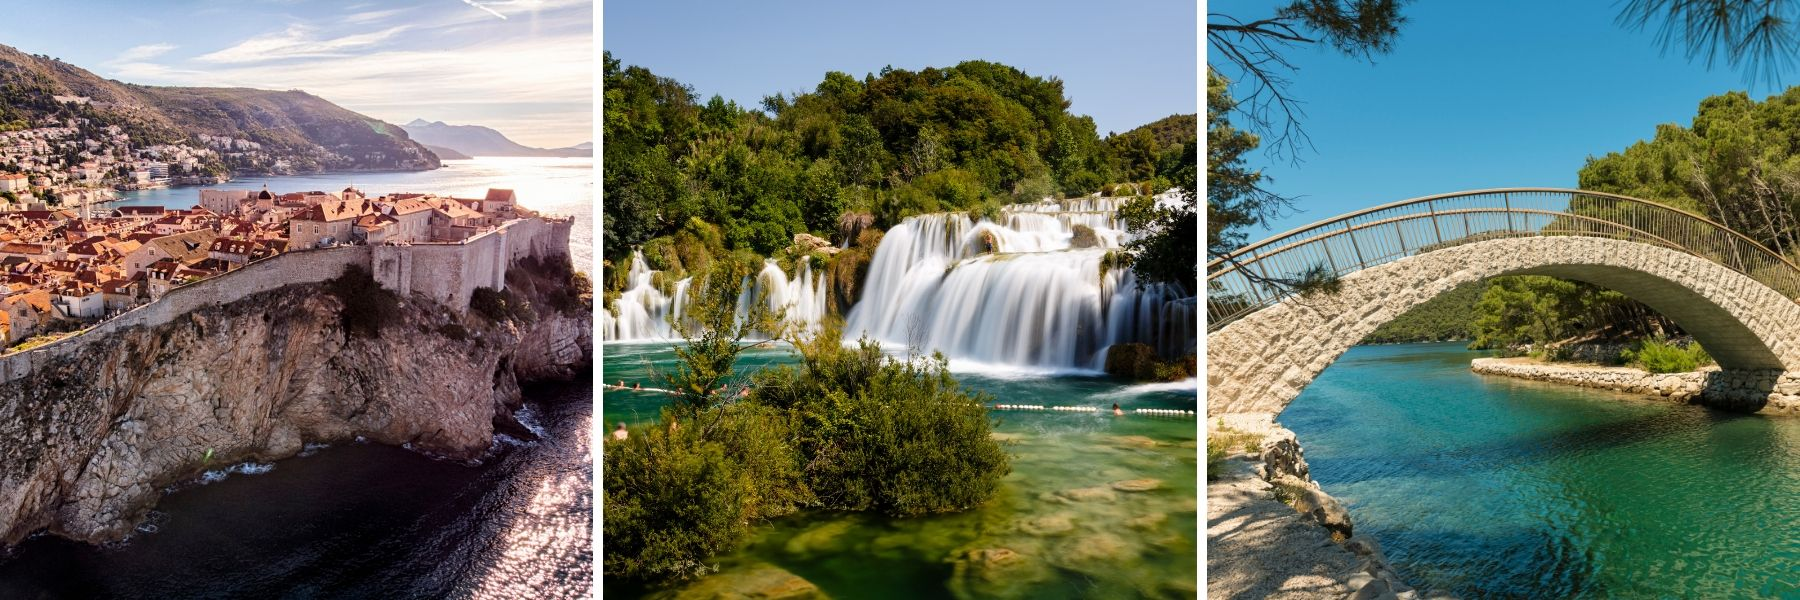 Unforgettable Croatia, Dubrovnik, Krka National Park, Mljet